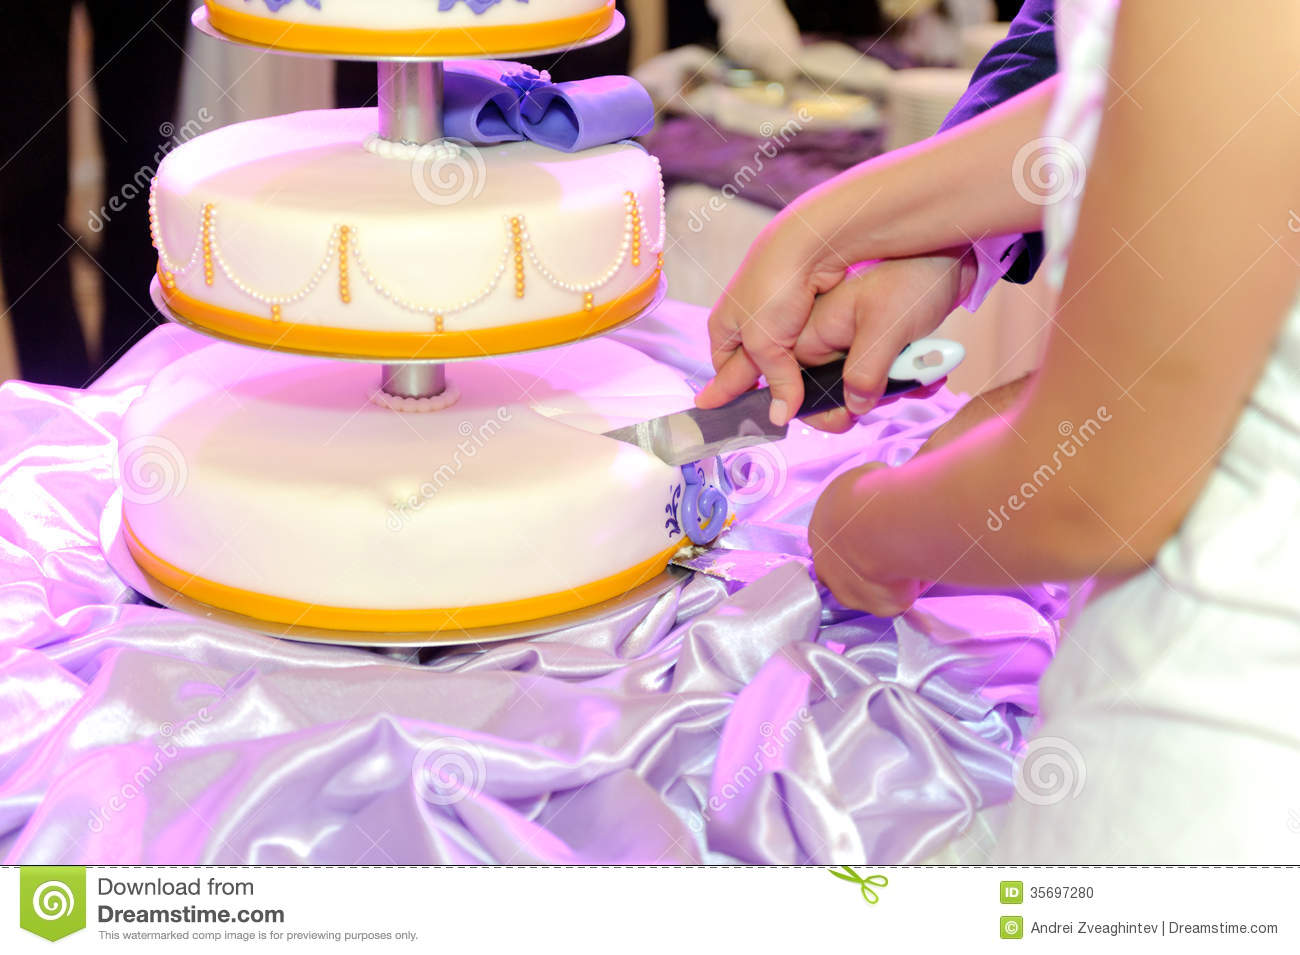 Cake on Violet Tablecloth stock photo. Image of food - 35697280